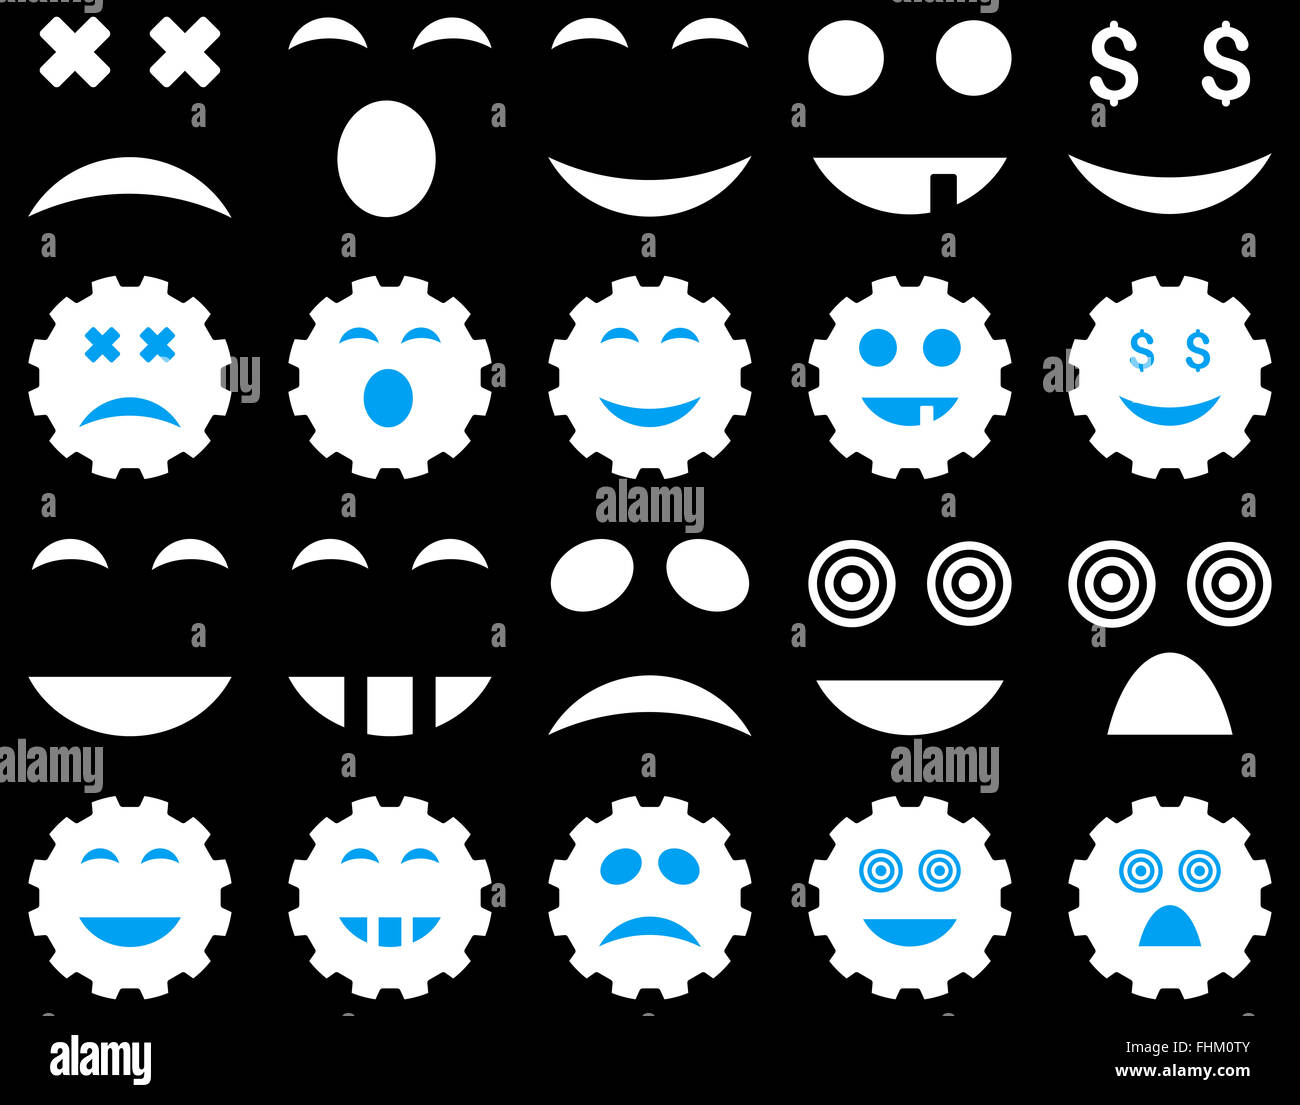 Tool, gear, smile, emotion icons - Stock Image